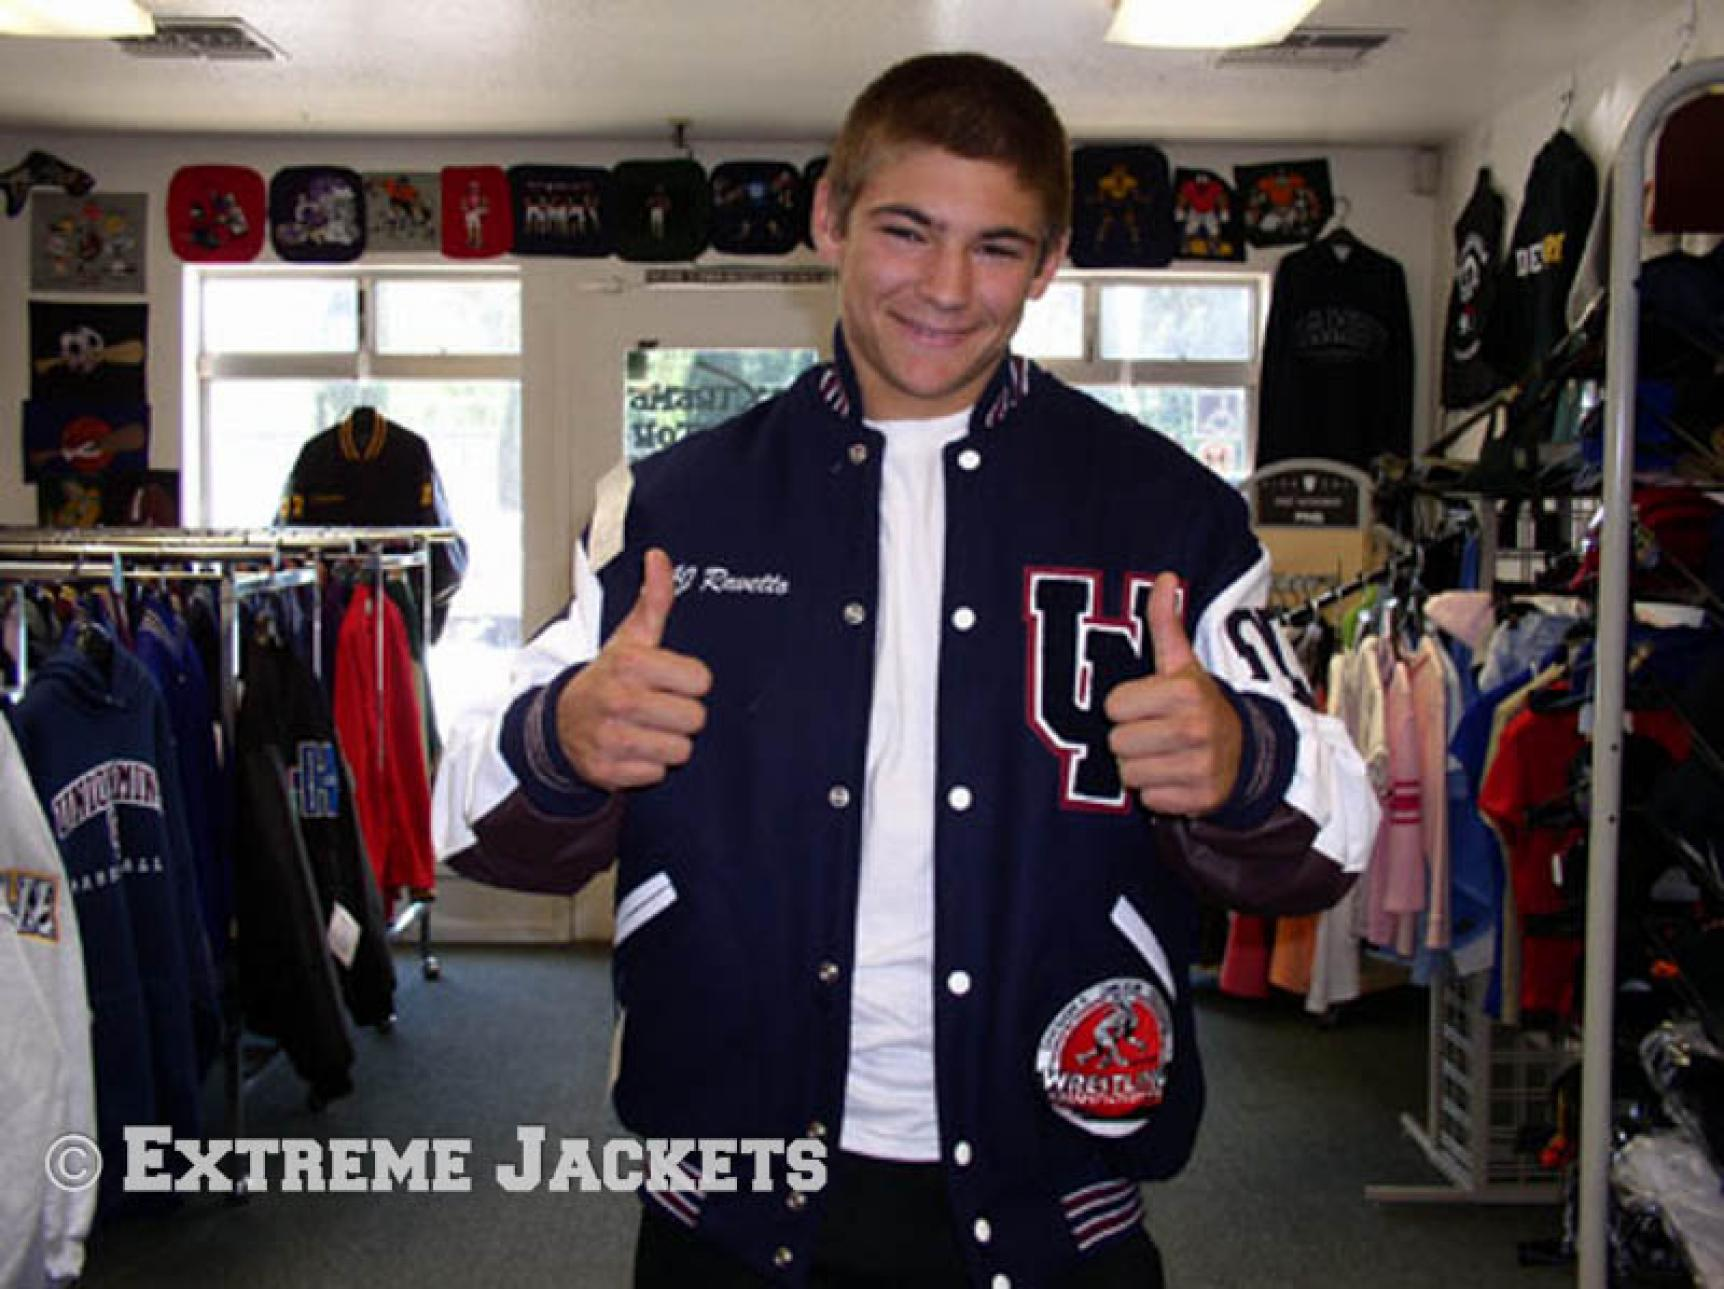 Navy and Maroon | Extreme Jackets